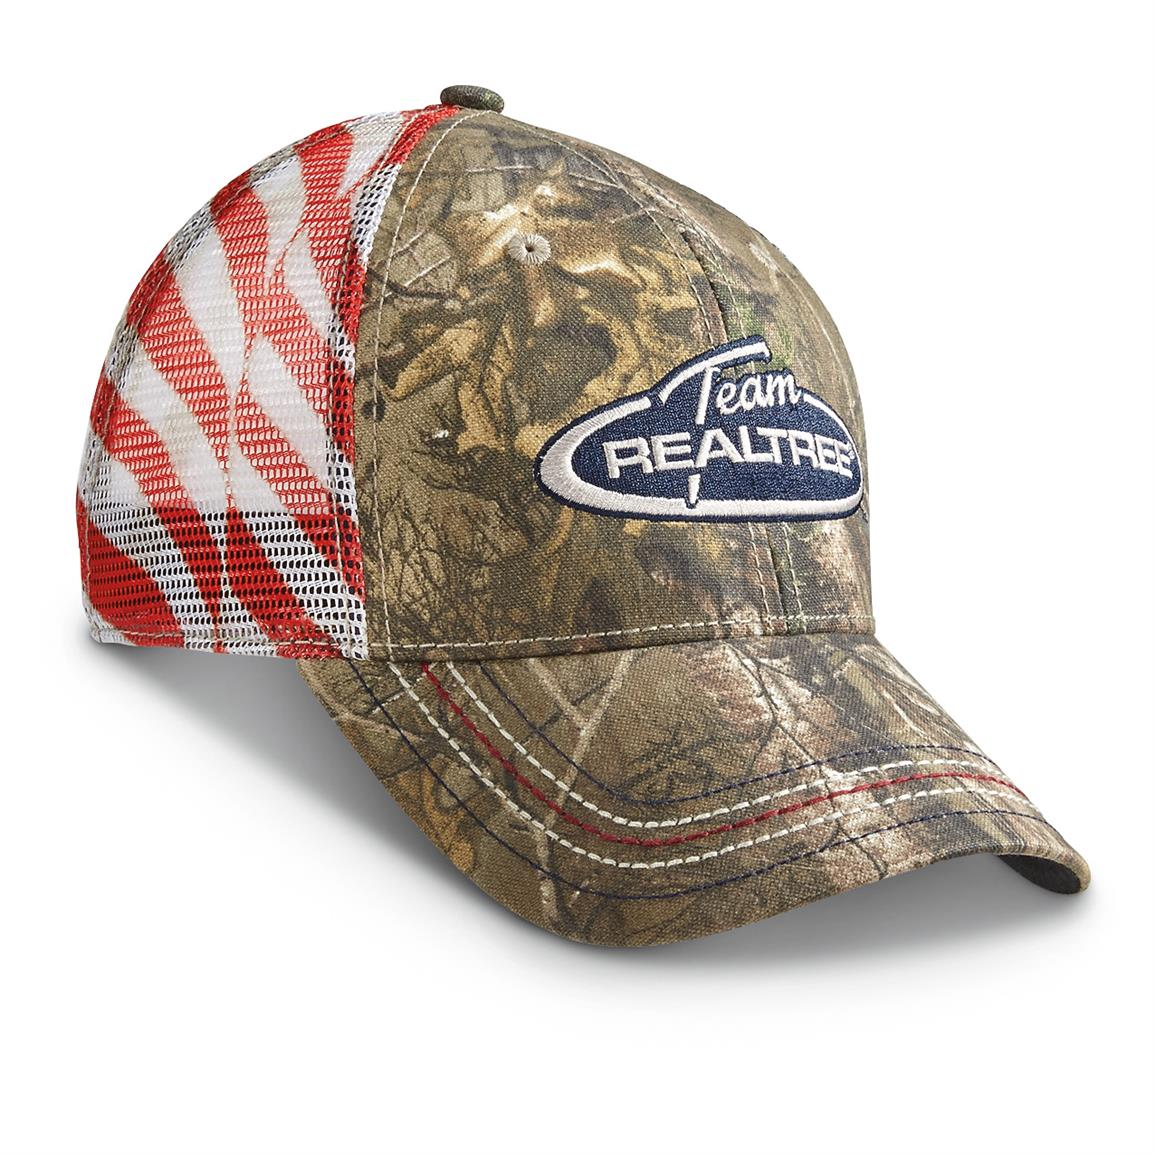 Outdoor Cap Americana Mesh Ball Caps, Realtree Xtra